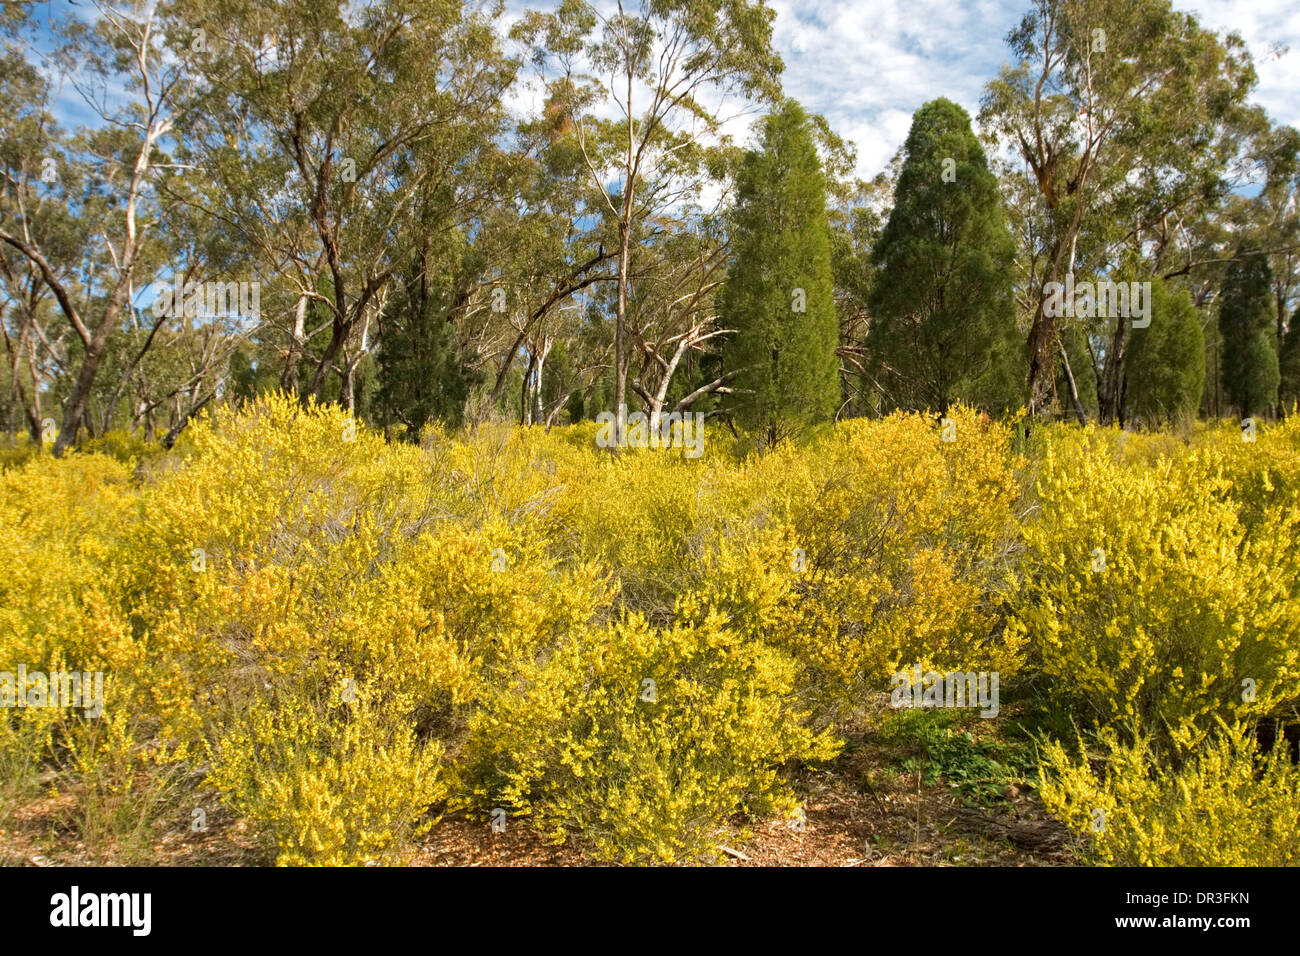 Mass of spectacular native flowering shrubs wattle acacia mass of spectacular native flowering shrubs wattle acacia covered in golden yellow flowers among forests in nsw australia dhlflorist Gallery